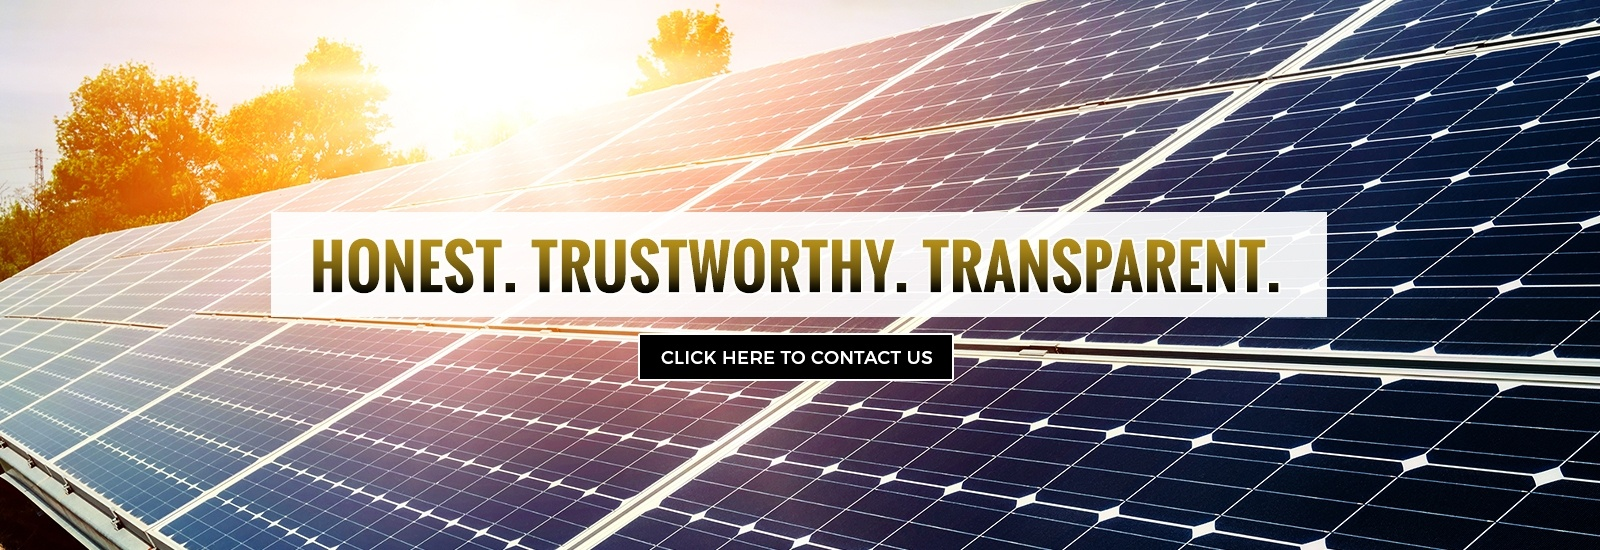 Consultants for Solar Panel Installations Orlando FL